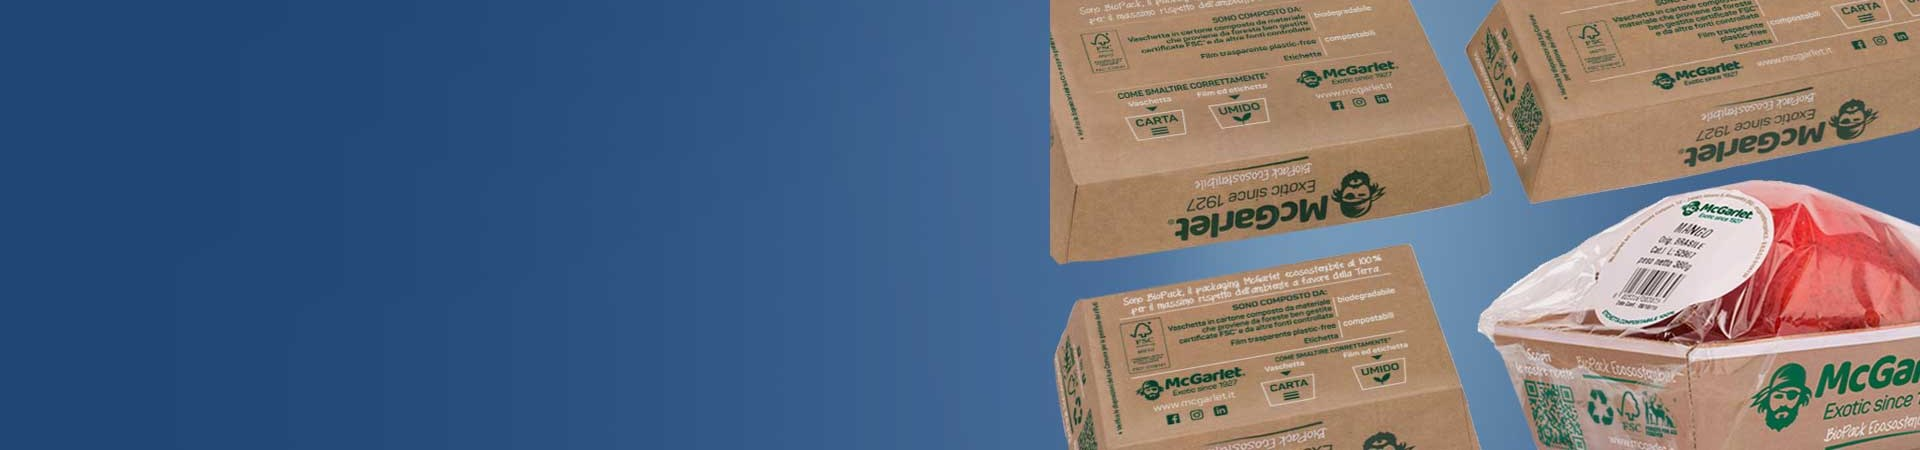 Mcgarlet-safe-and-green Packaging